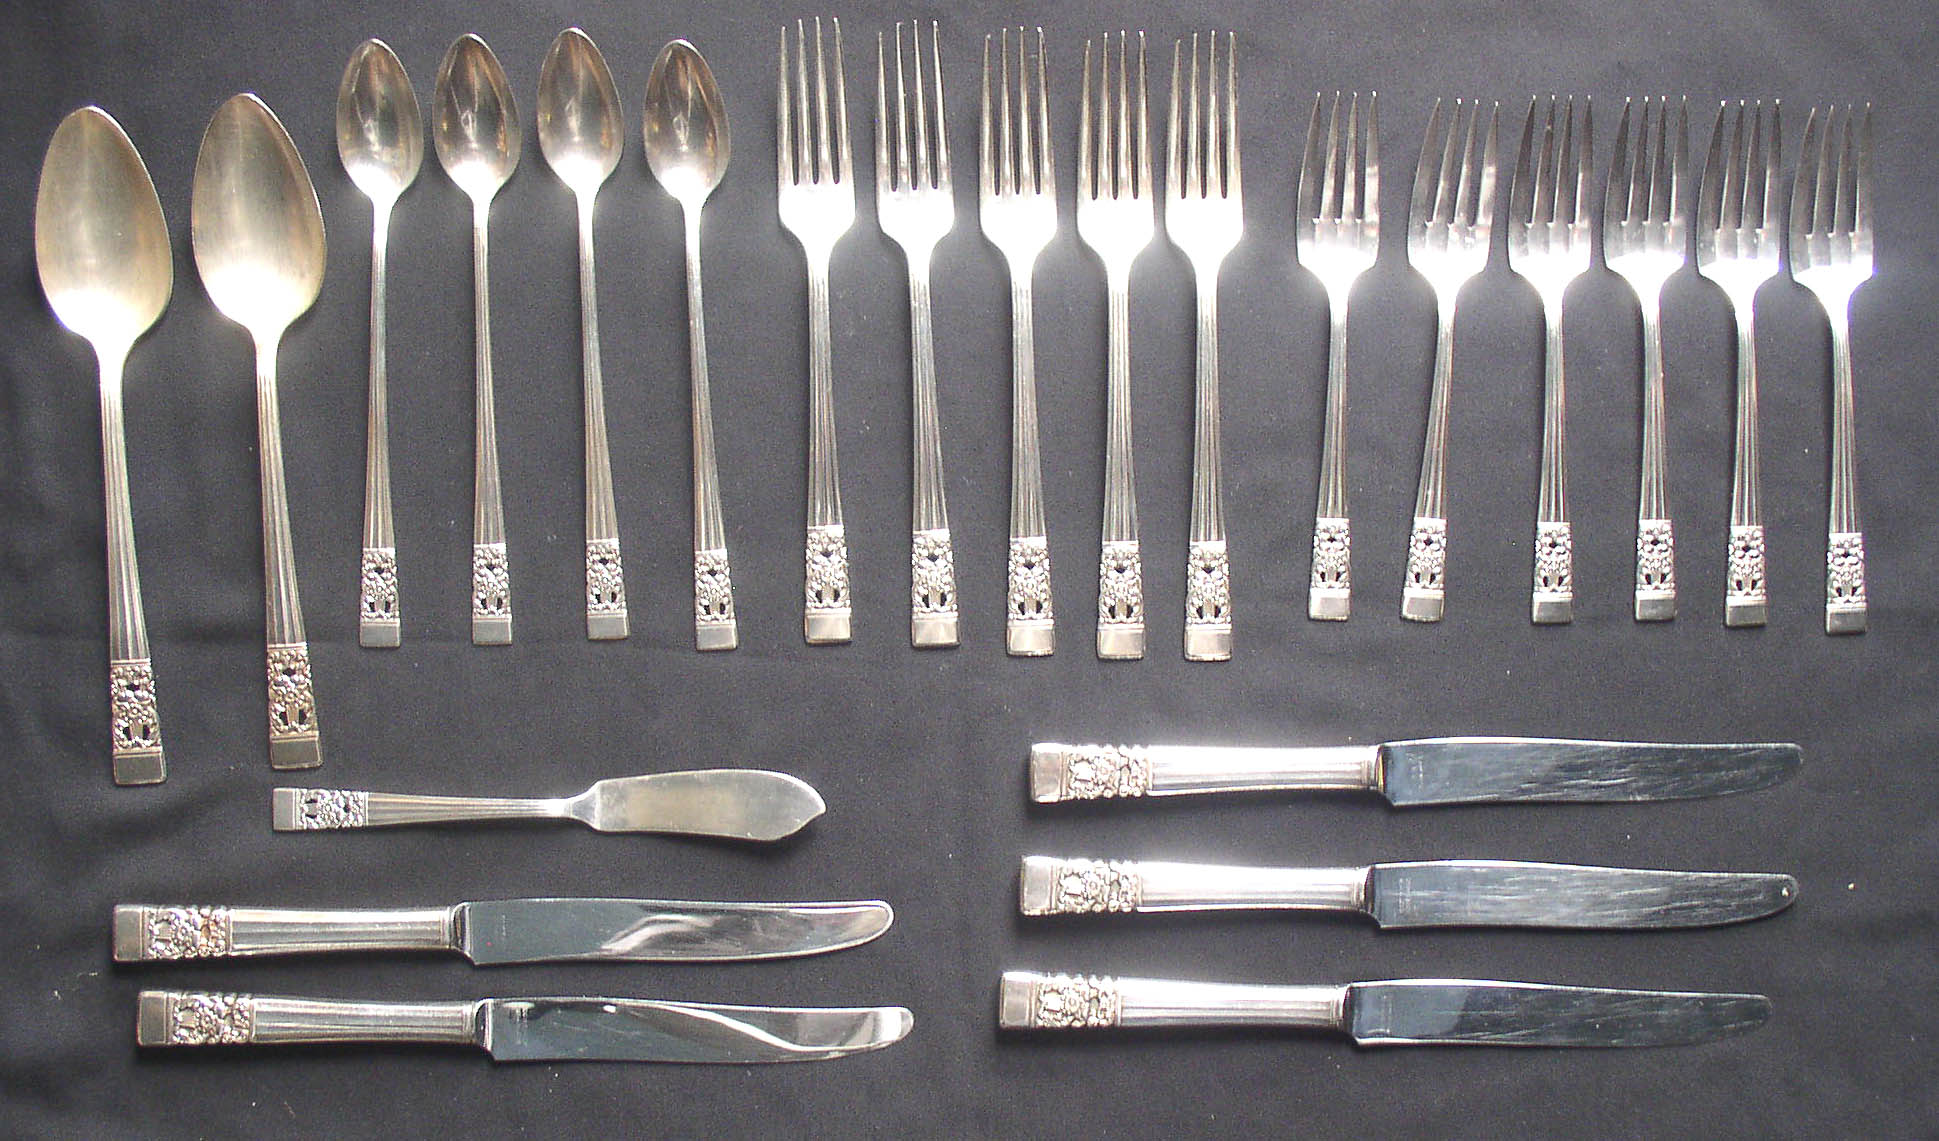 Community silverware patterns - TheFind